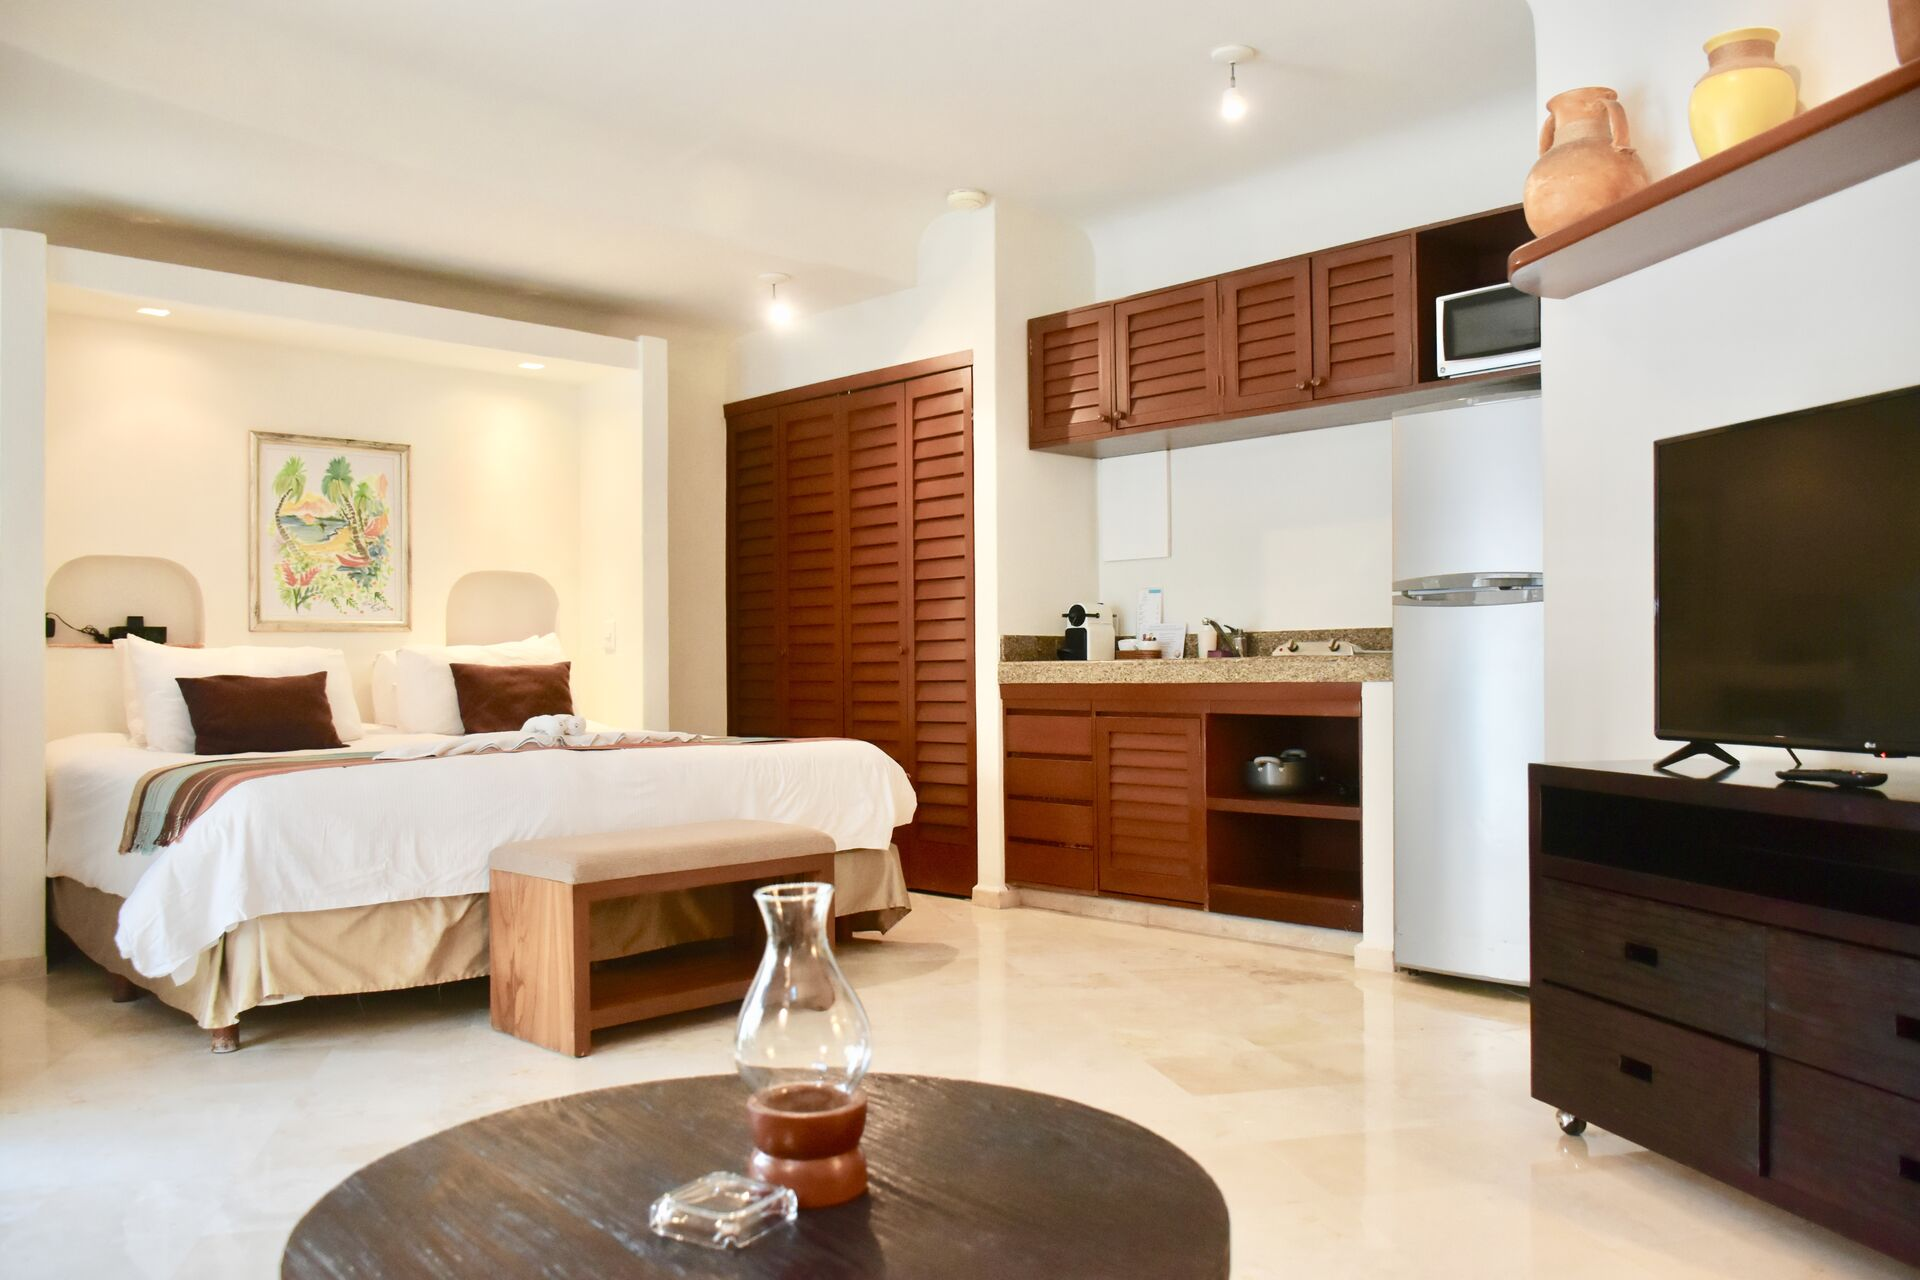 Ocean view room with king size bed and kitchenette.